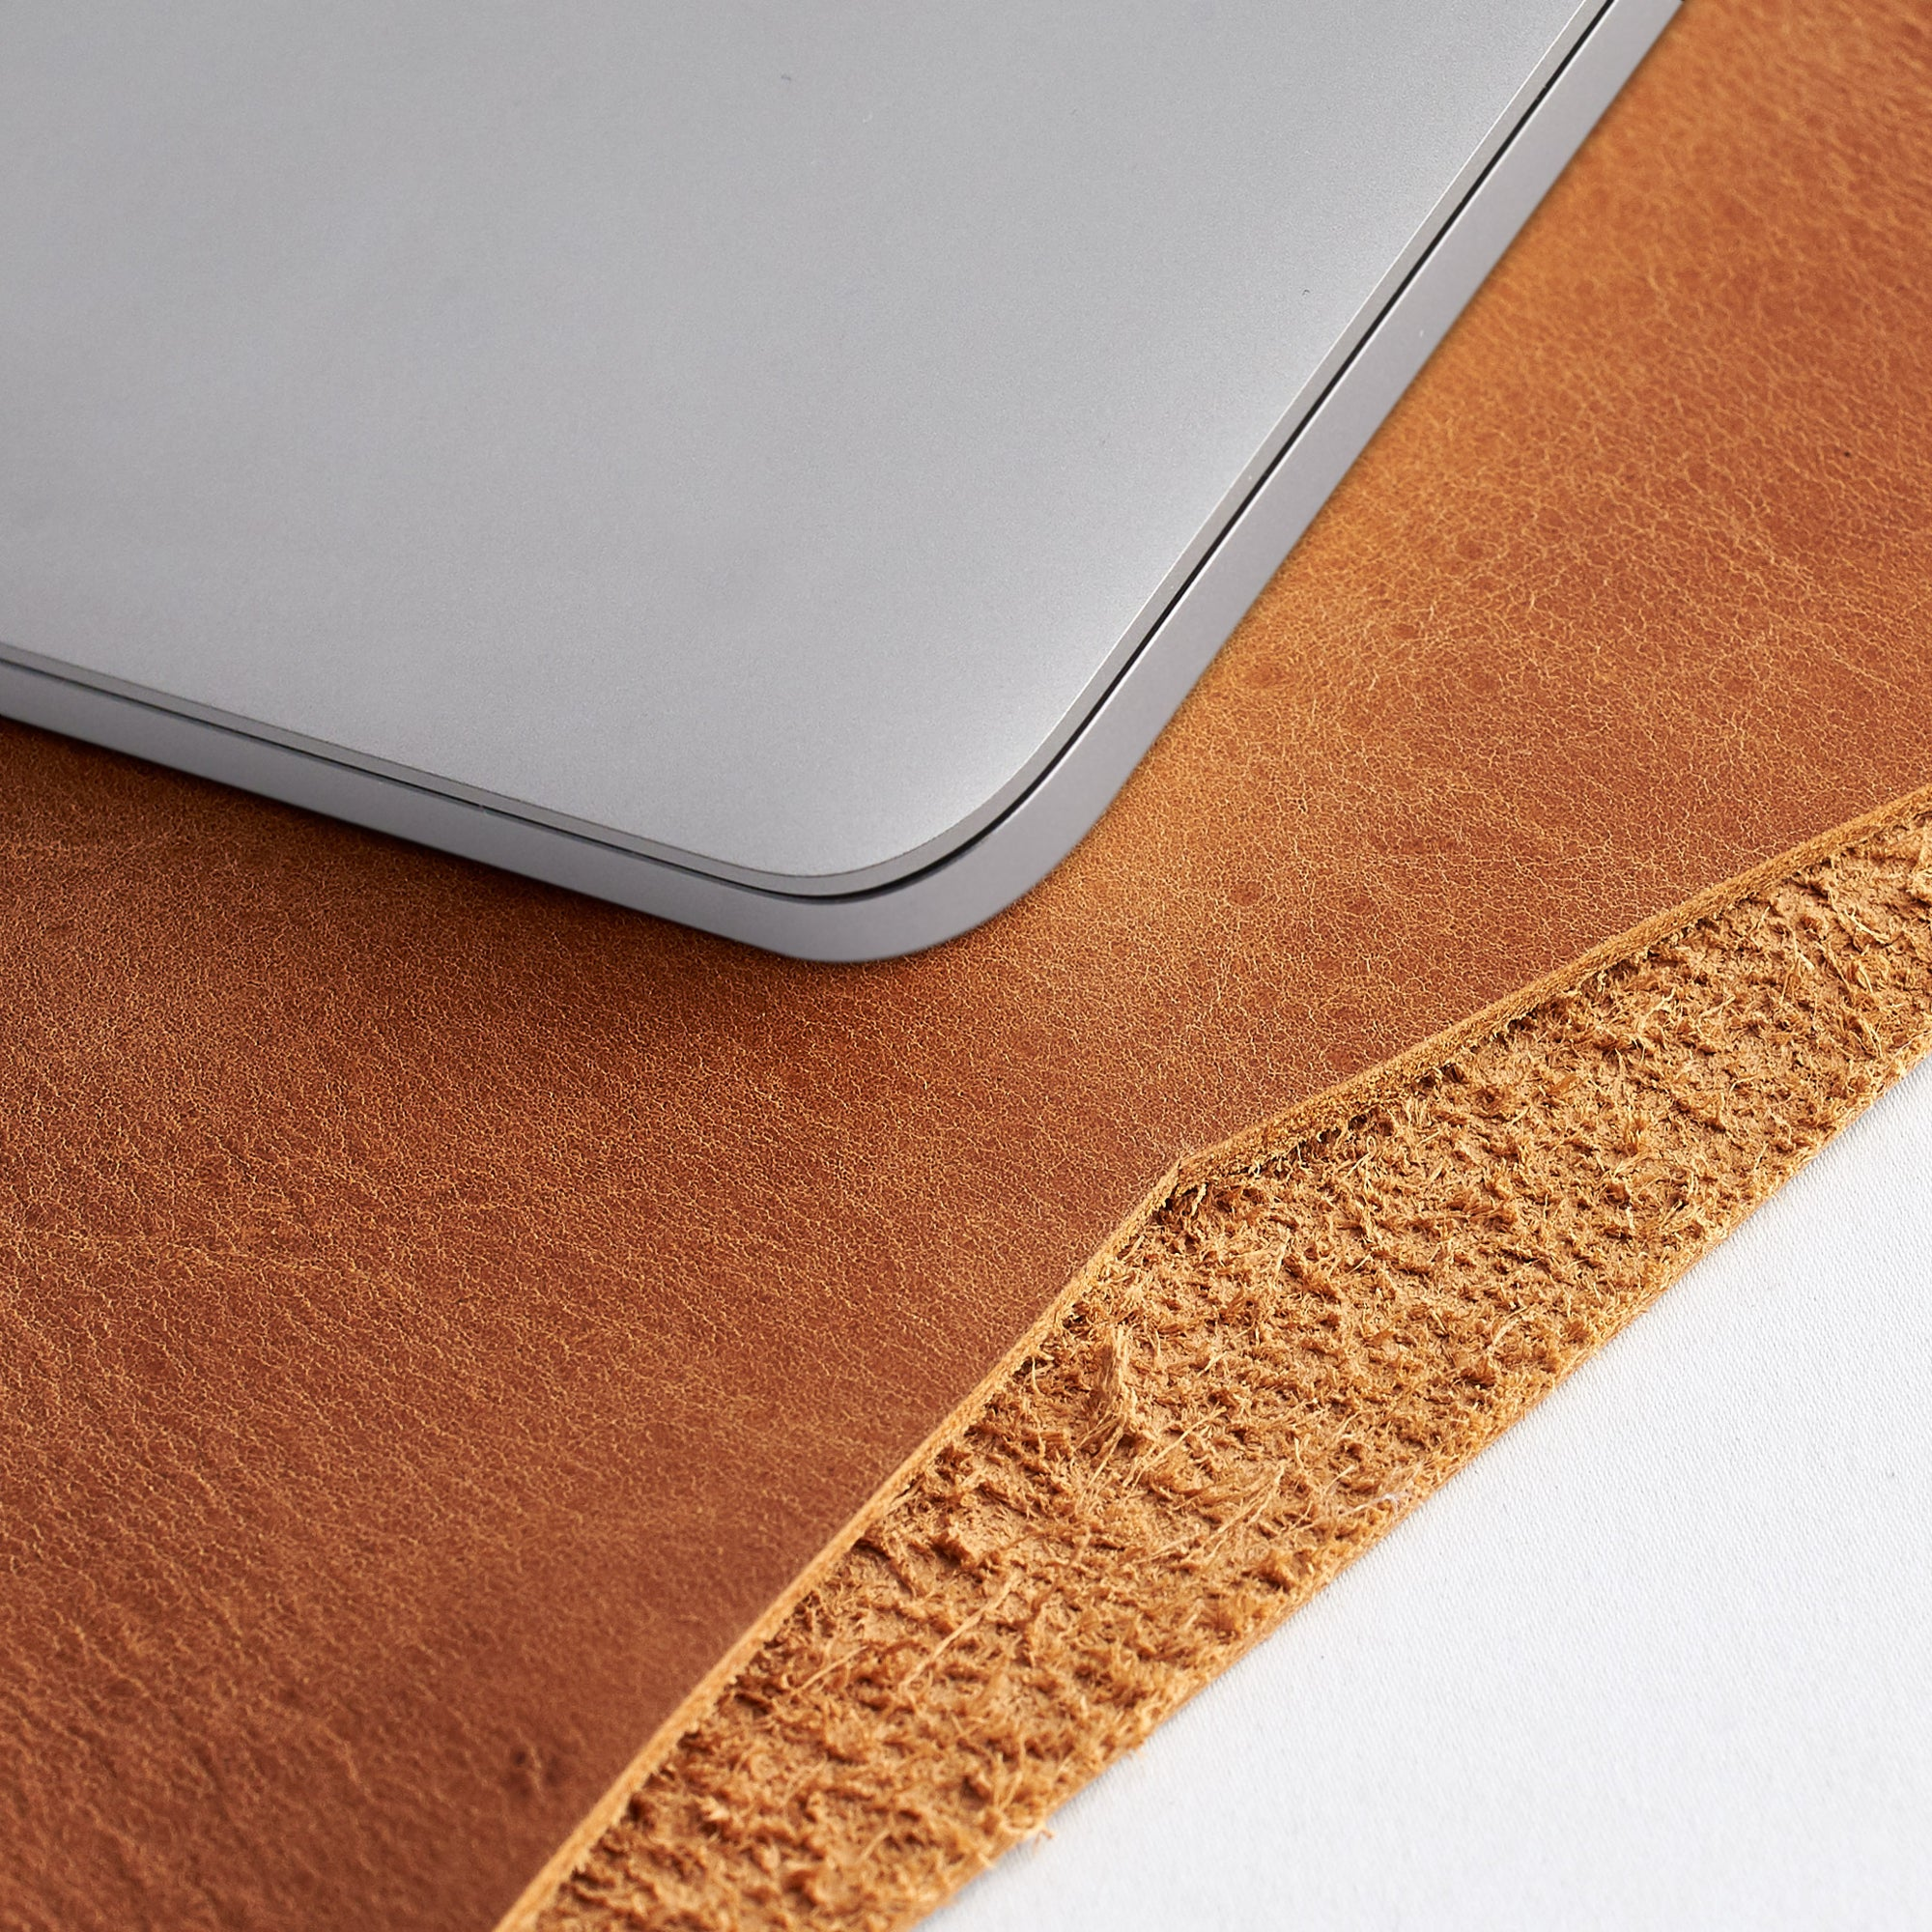 Basic Microsoft Surface sleeve